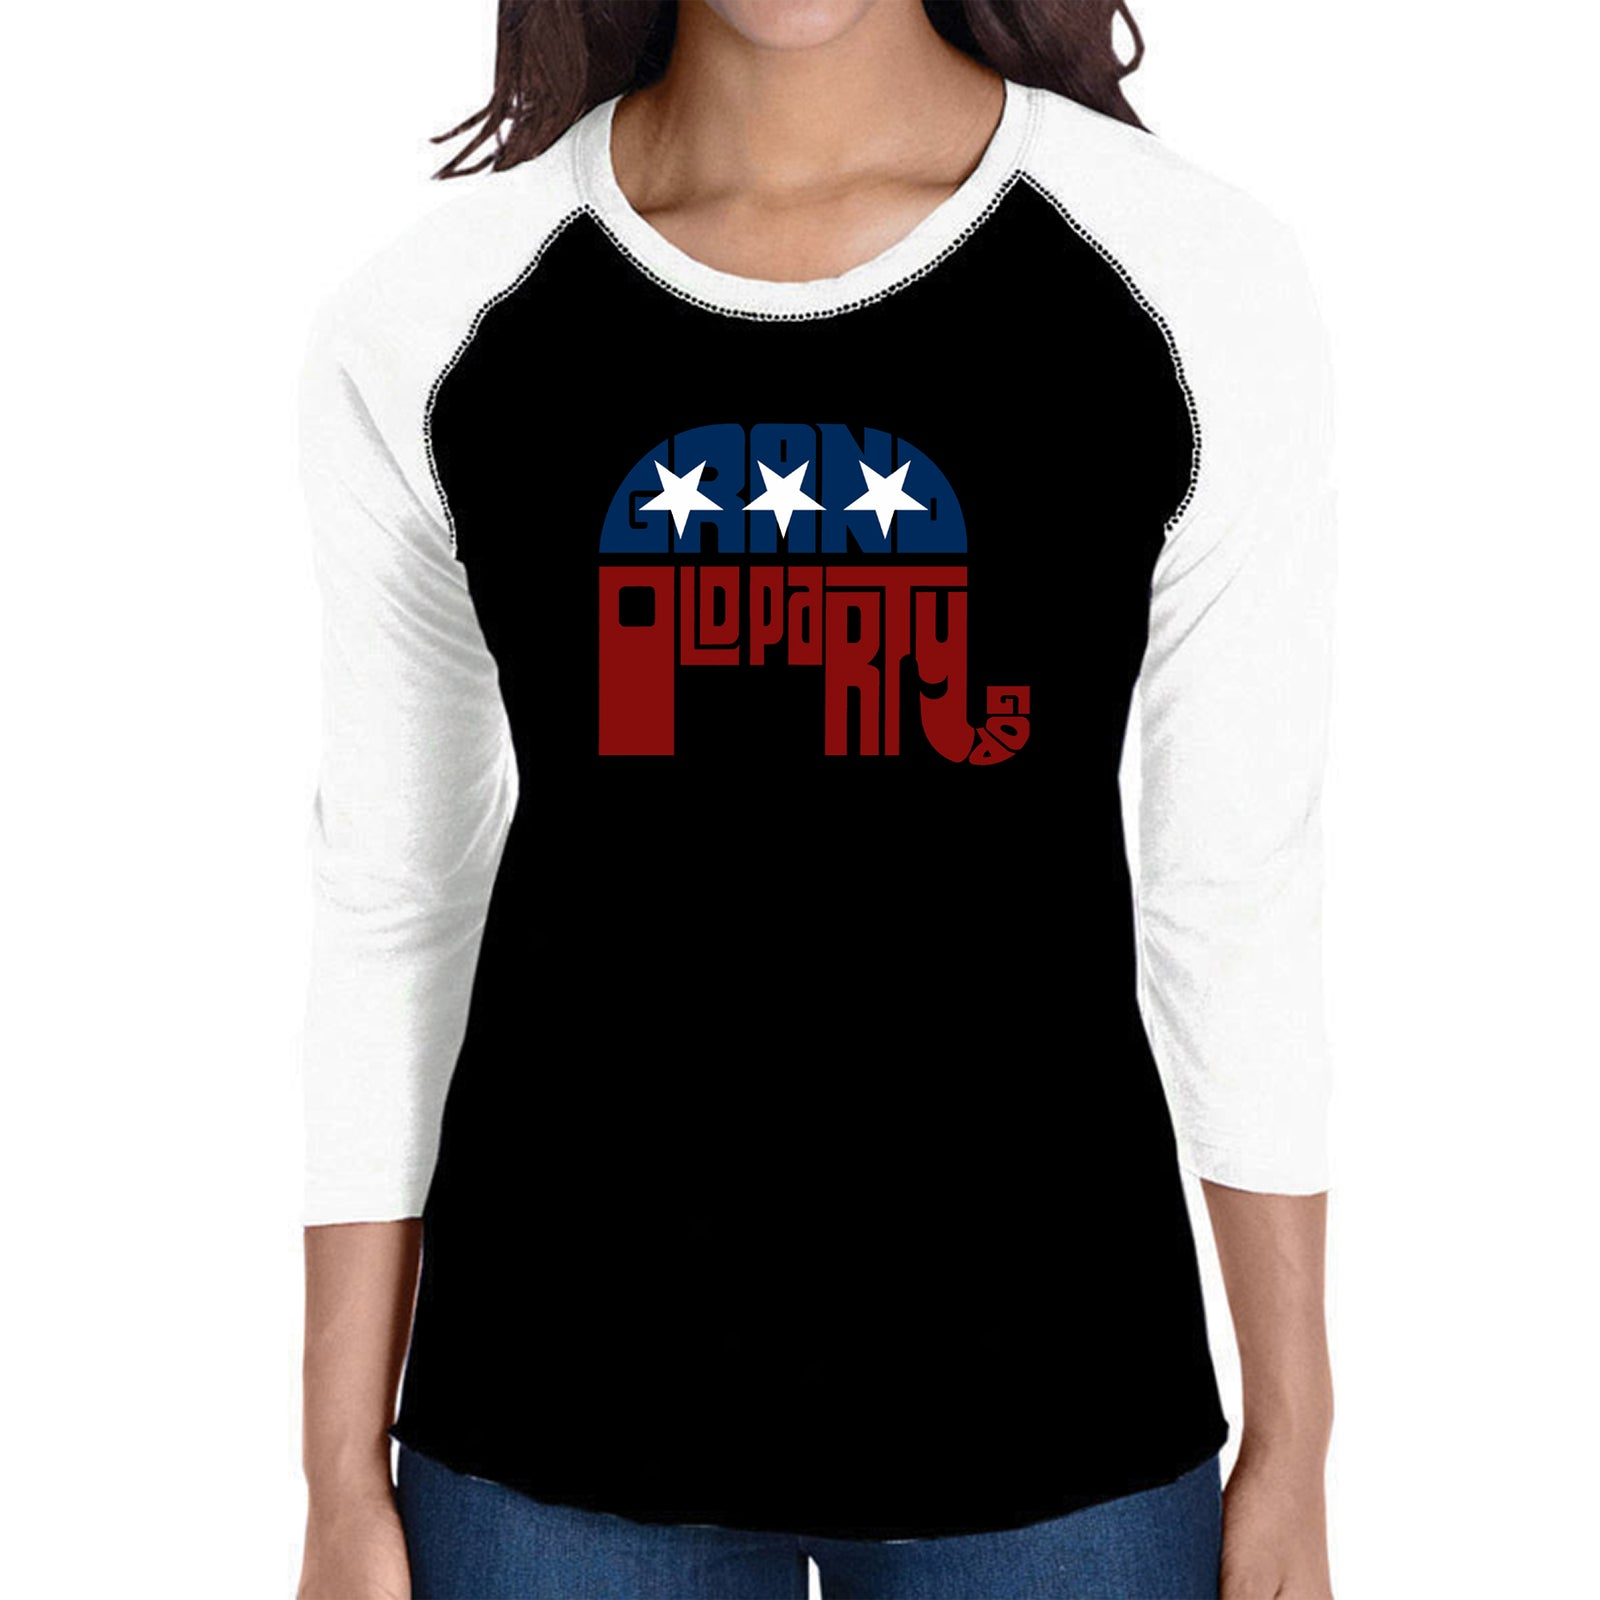 Women's Raglan Baseball Word Art T-shirt - REPUBLICAN - GRAND OLD PARTY